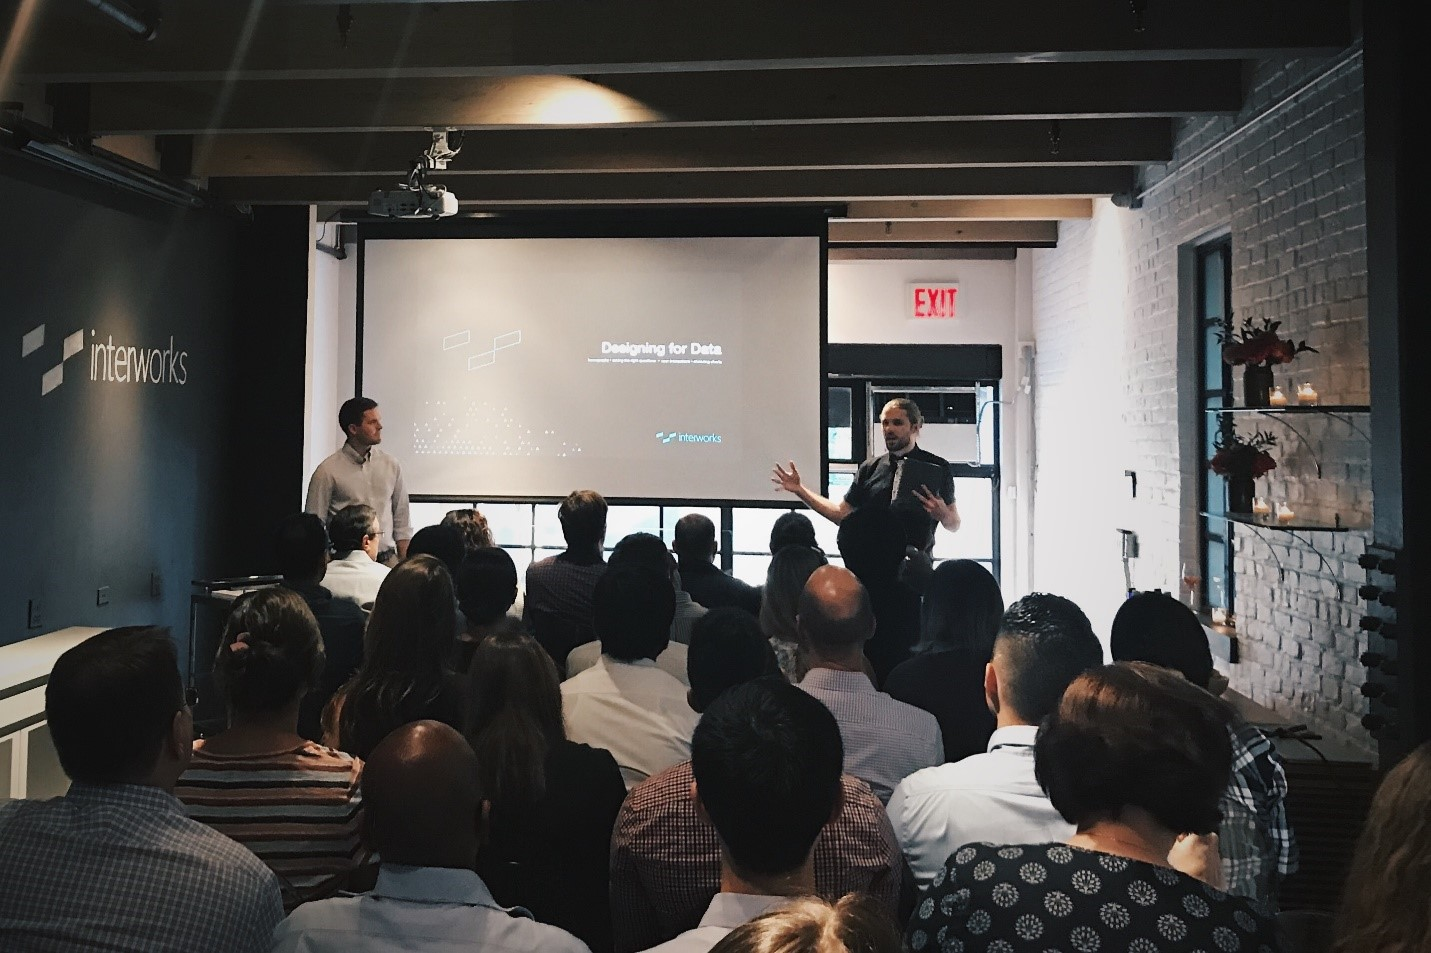 InterWorks designing for data event in New York City